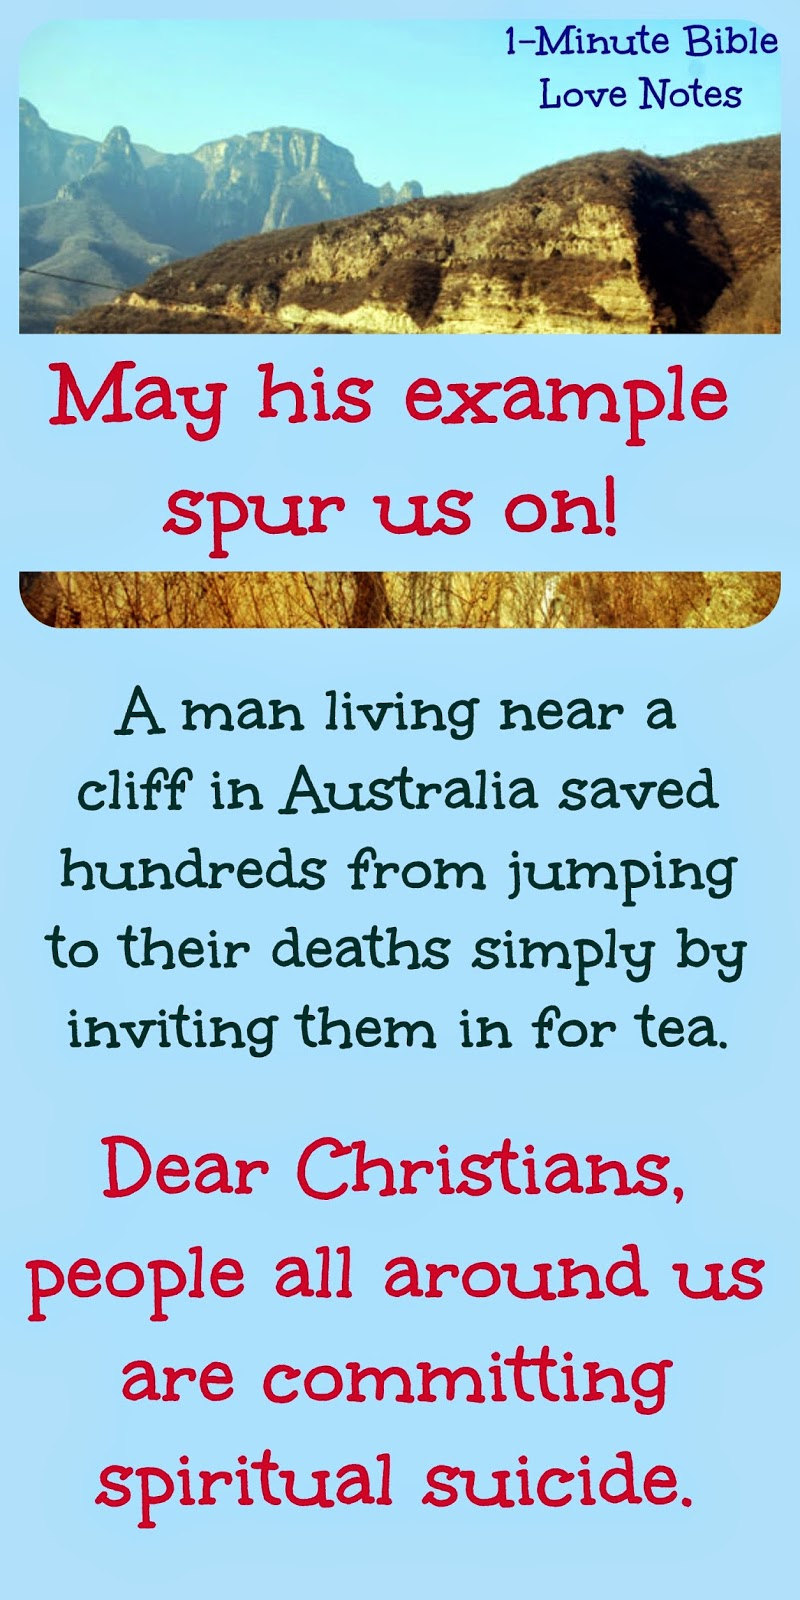 Don Ritchie, Stopped people from jumping off cliff in Australia, Jesus calls us to rescue those from spiritual suicide